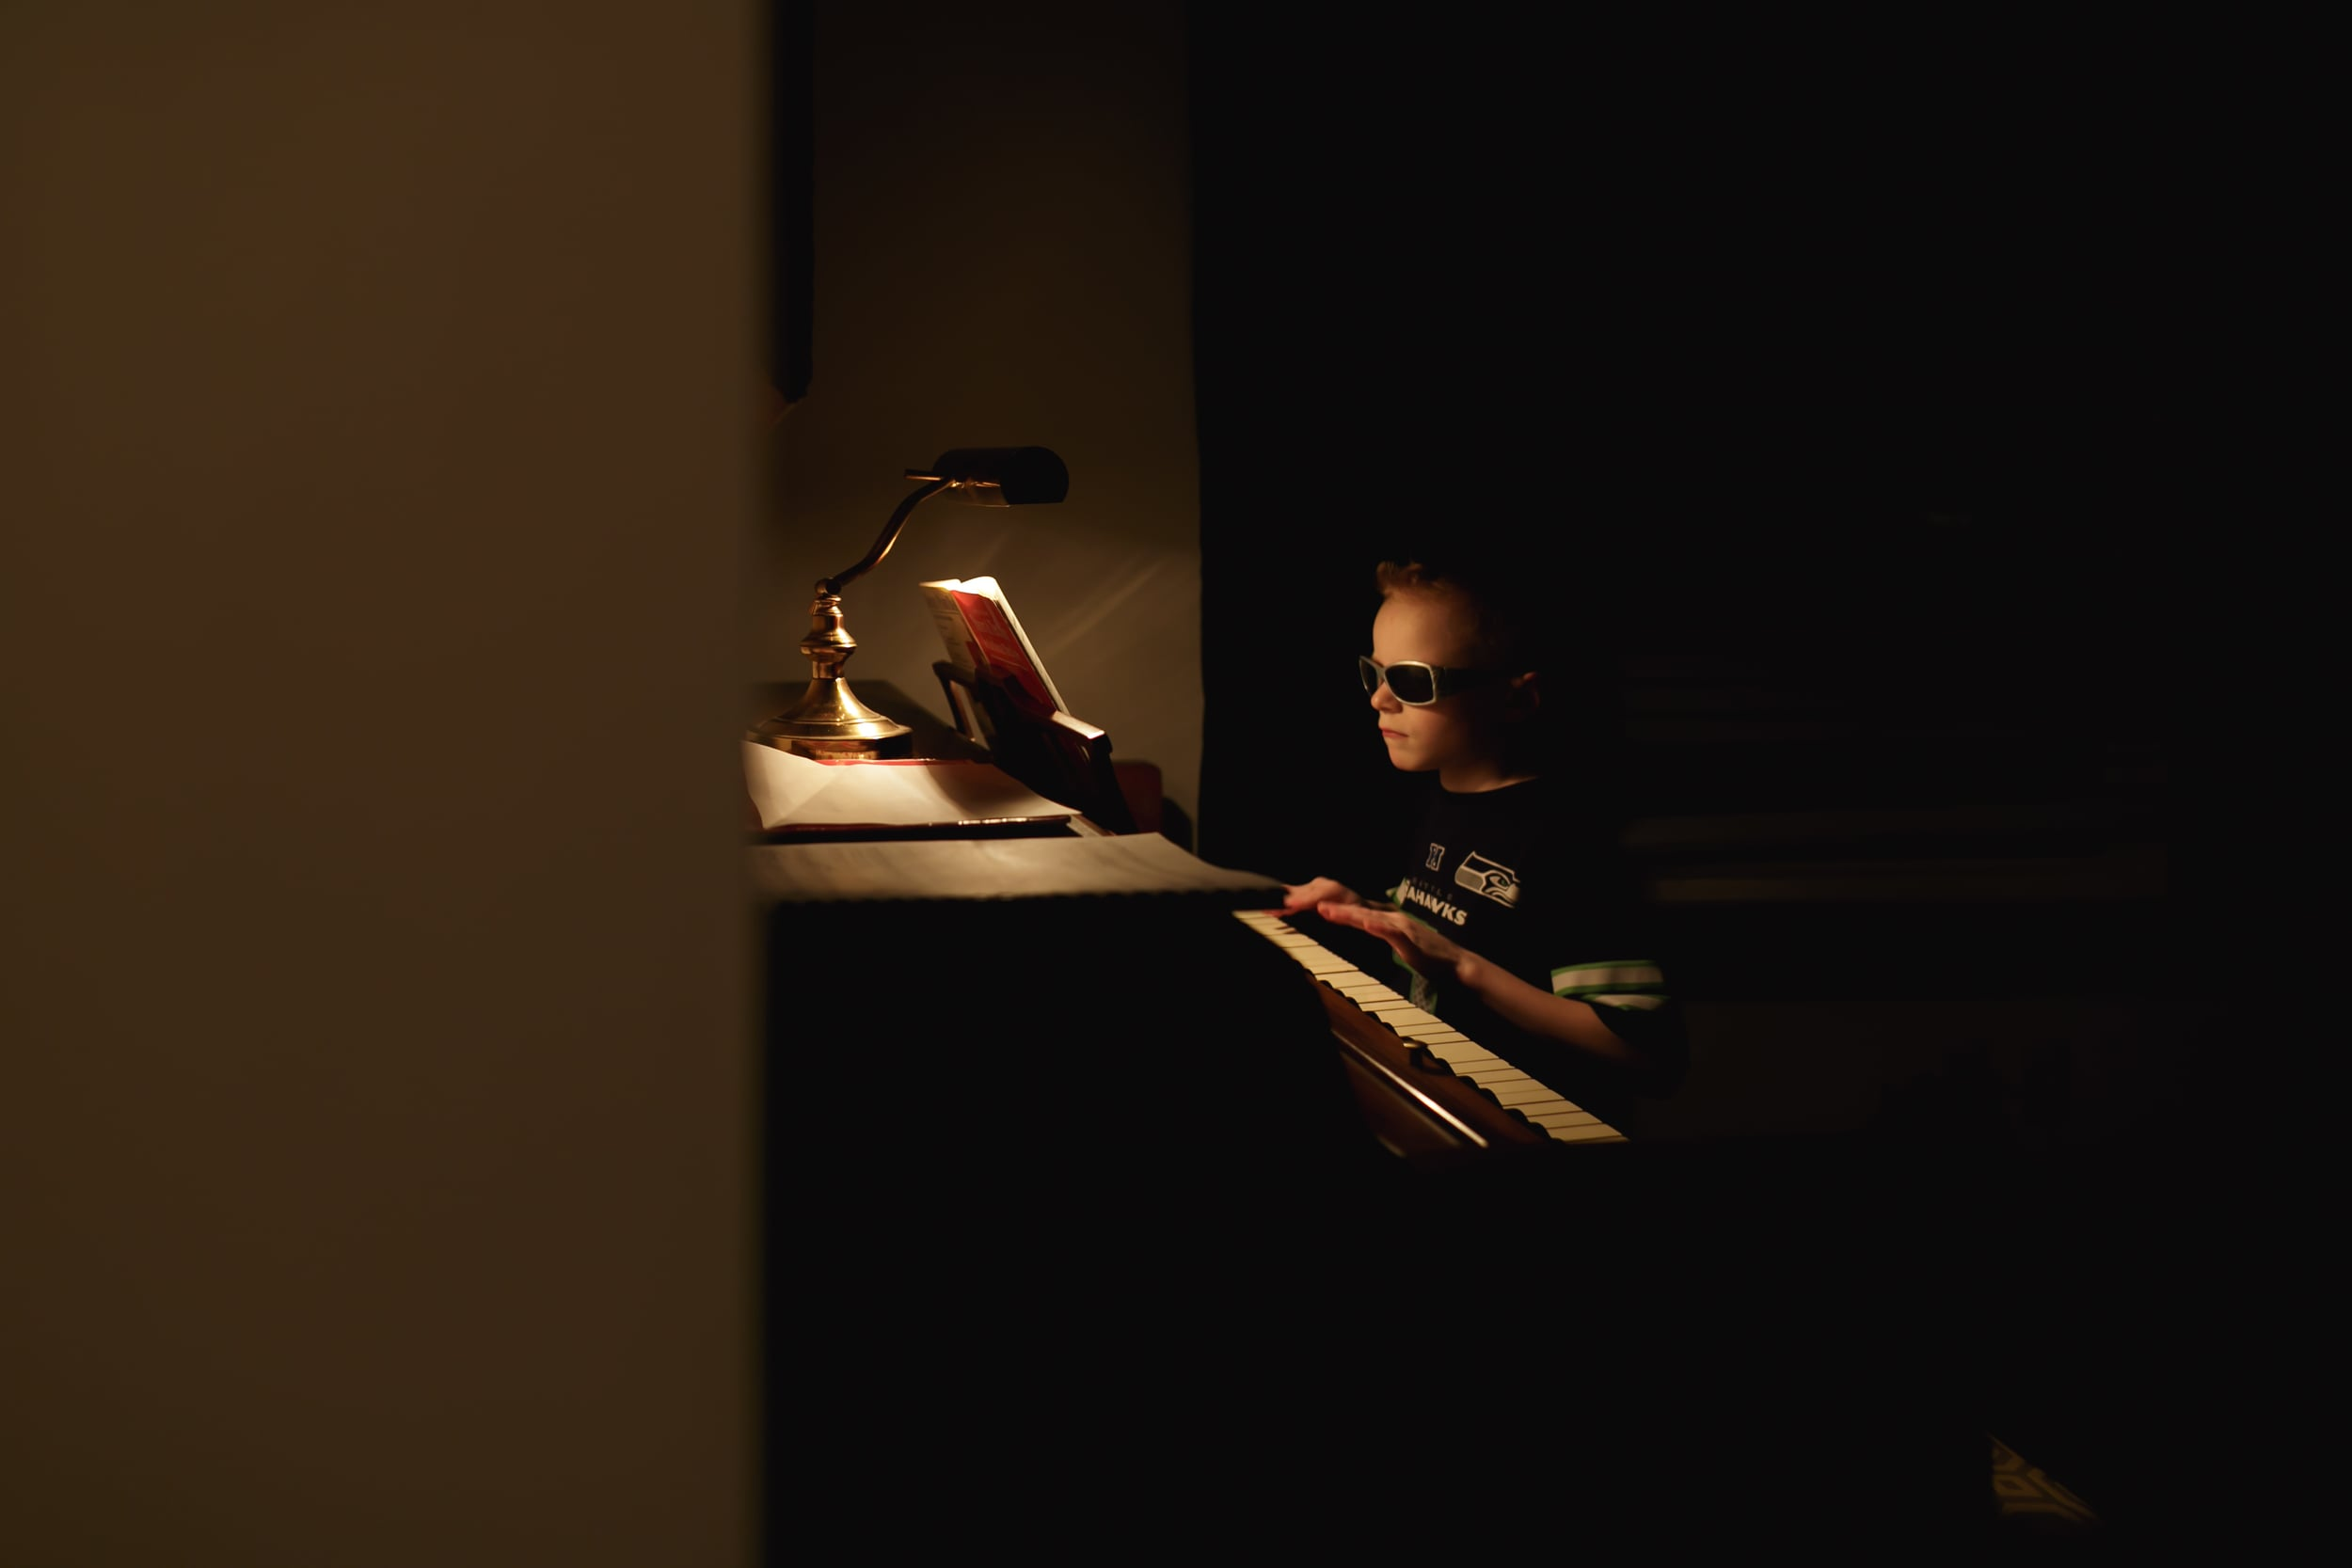 Ben started piano lessons. He's so cool he wears his sunglasses while he practices.